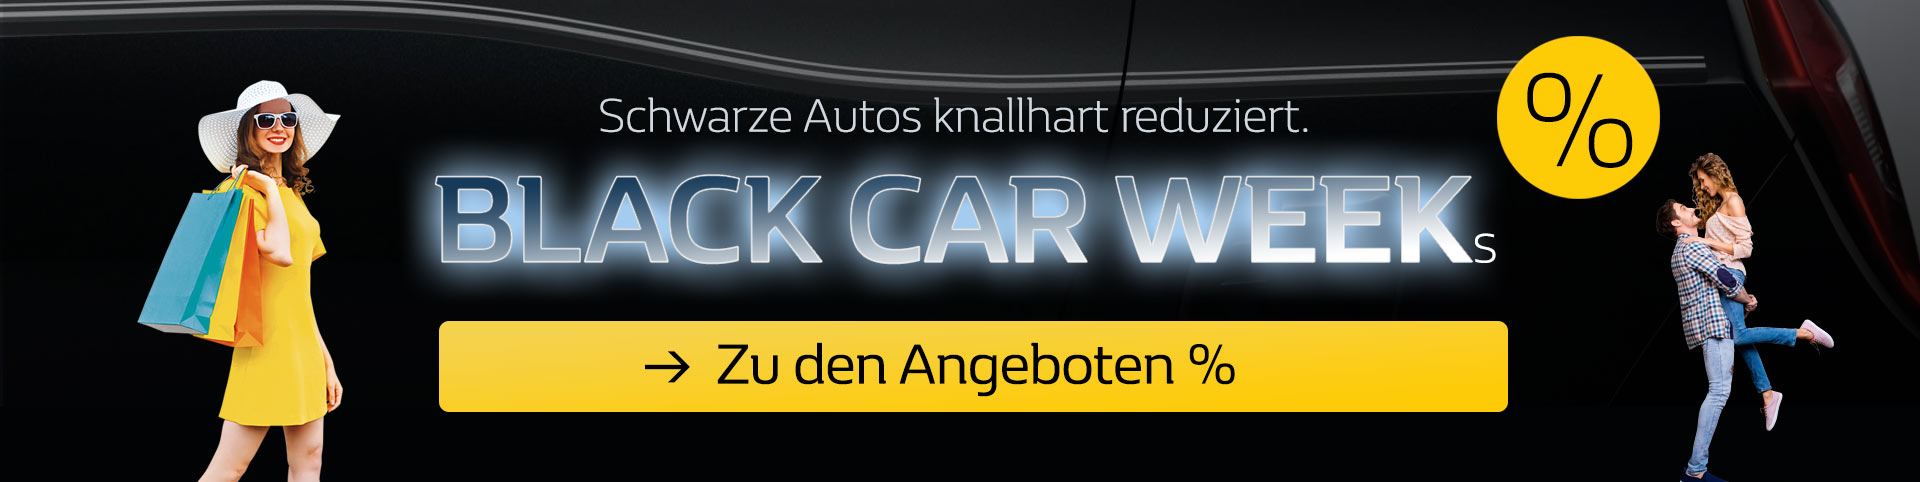 Black Car Week im Autozentrum P&A-Preckel